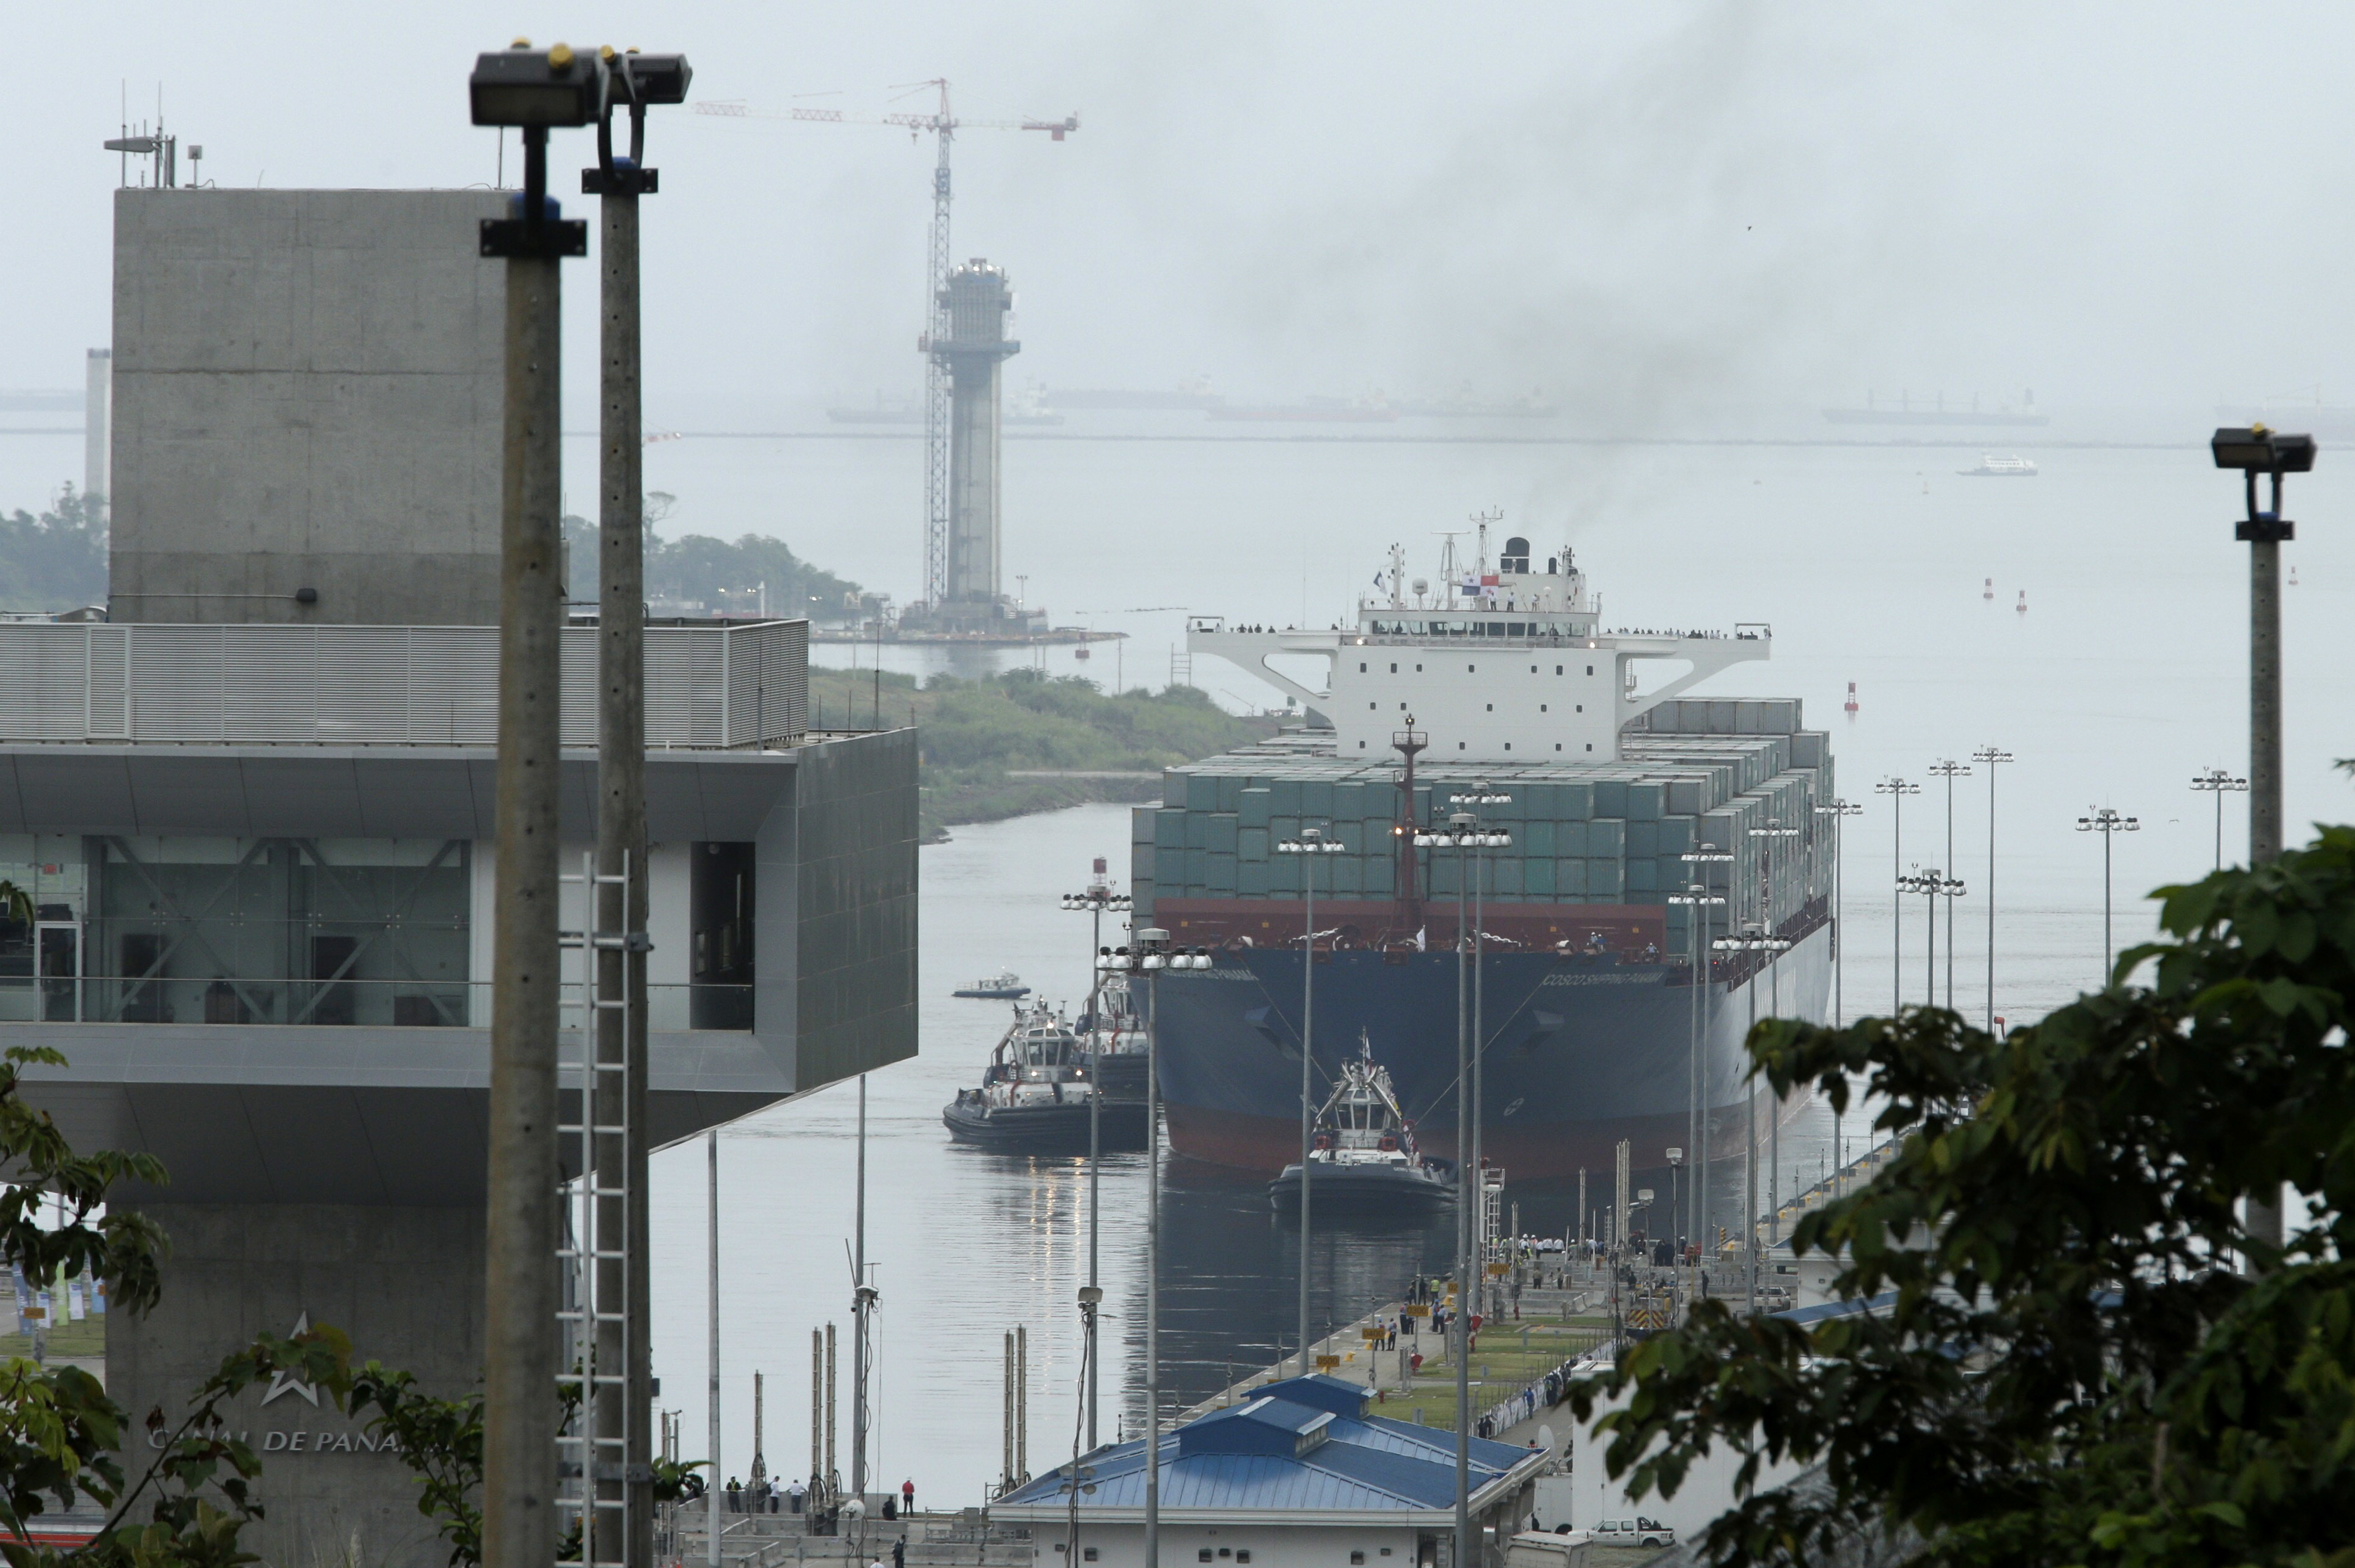 WATCH: Inauguration Of The $5 Billion Panama Canal Expansion